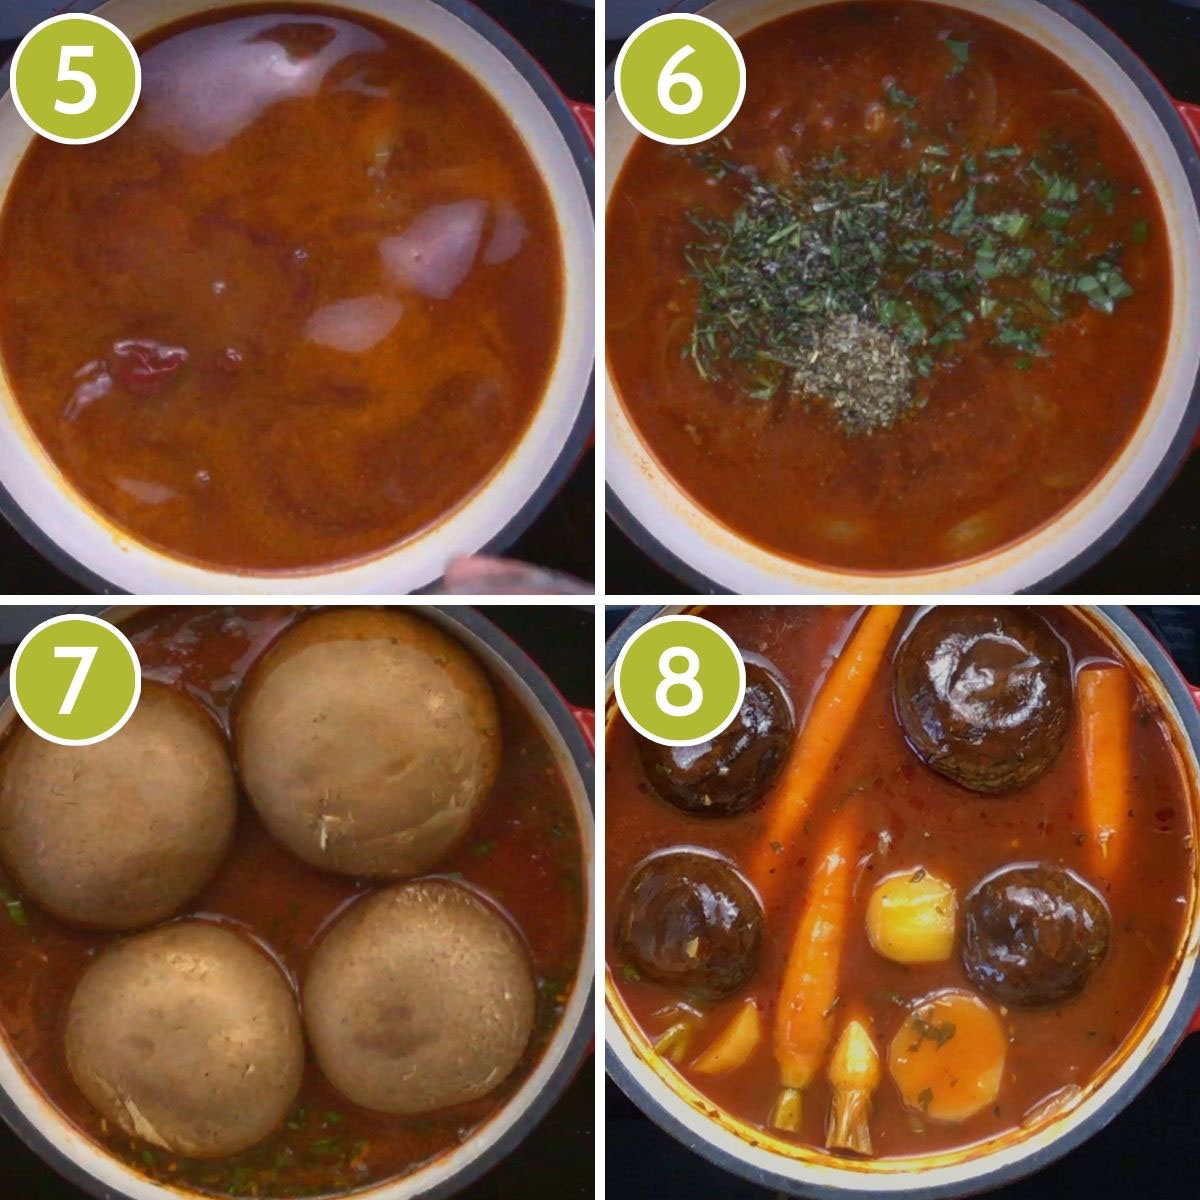 4 photo collage of how to cook portobello vegan pot roast showing a frying pan with red broth, green herbs, 4 large portobello mushroom caps and other yellow orange and purple veggies